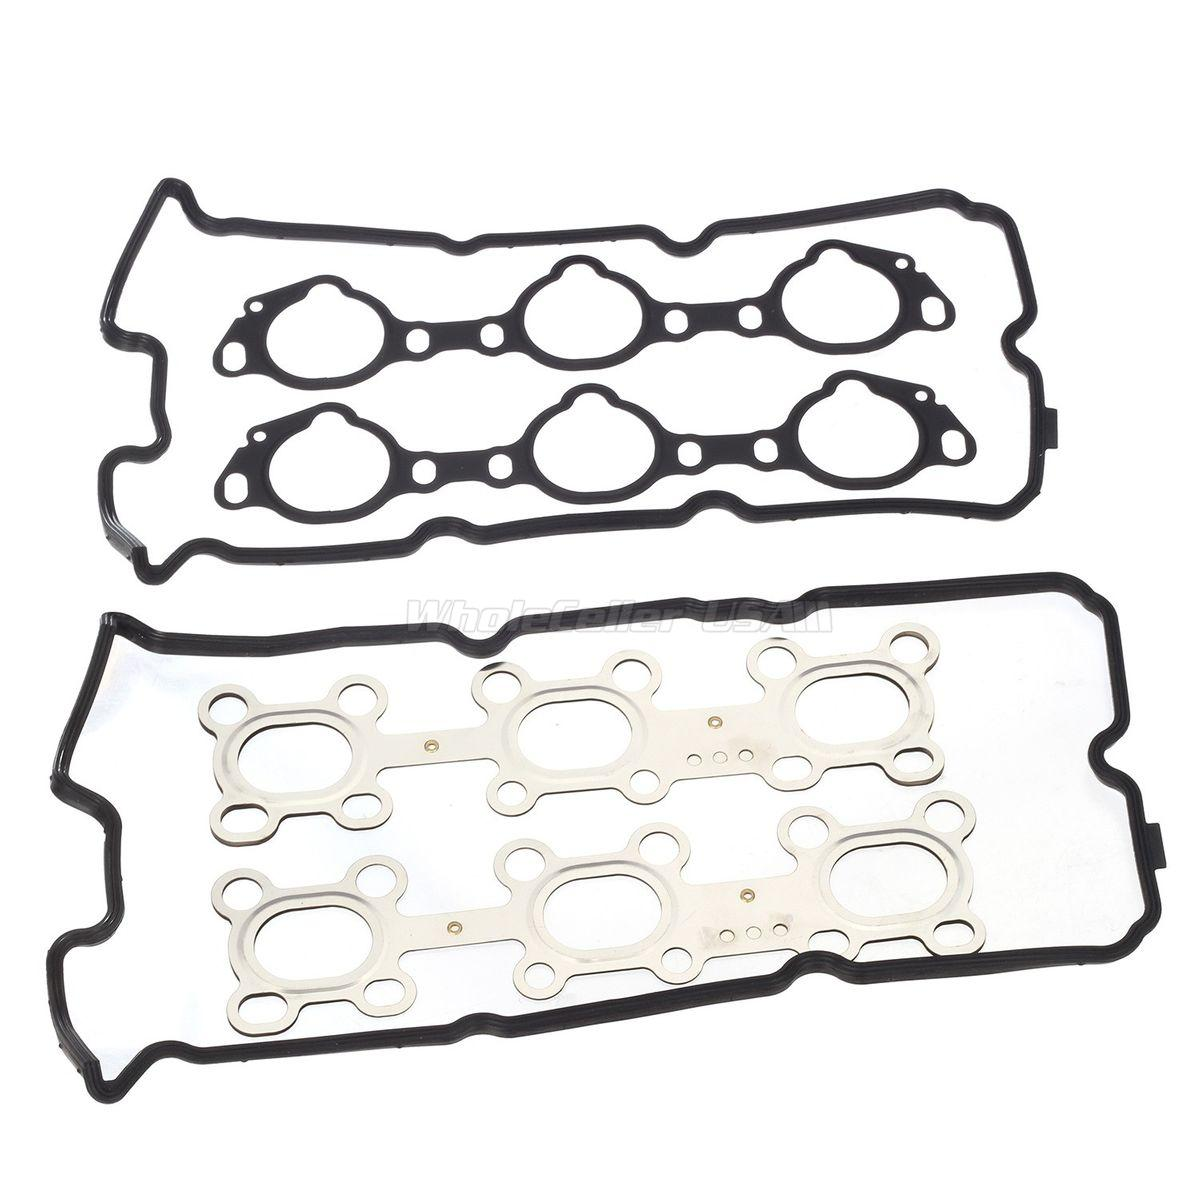 Fits 05 12 Nissan Pathfinder 4 0l V6 Dohc Head Gasket Kit